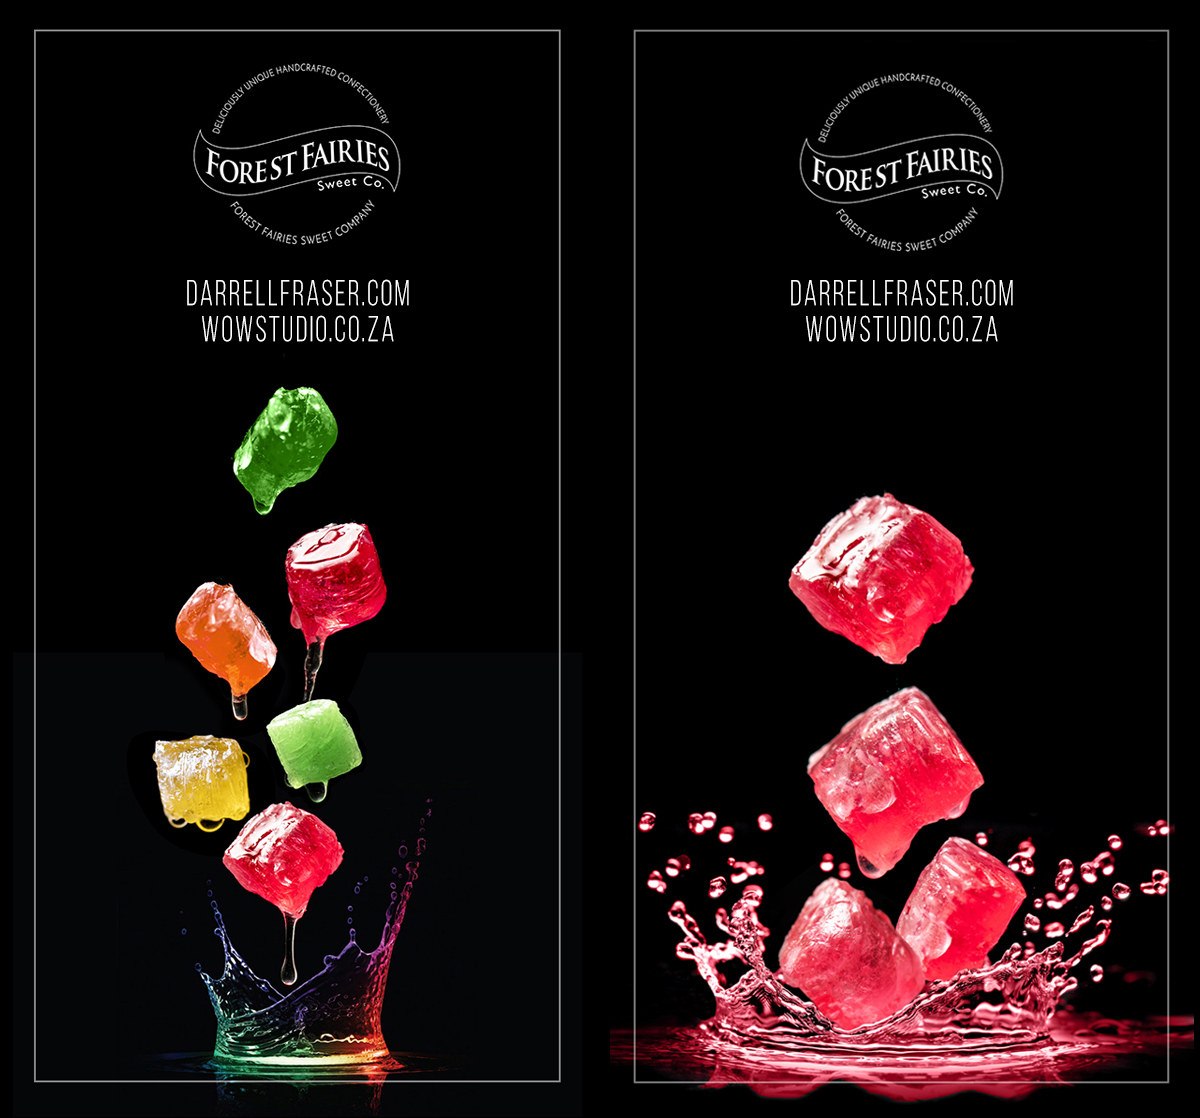 WOW Creative Design Studio Food and Product Photography and Branding